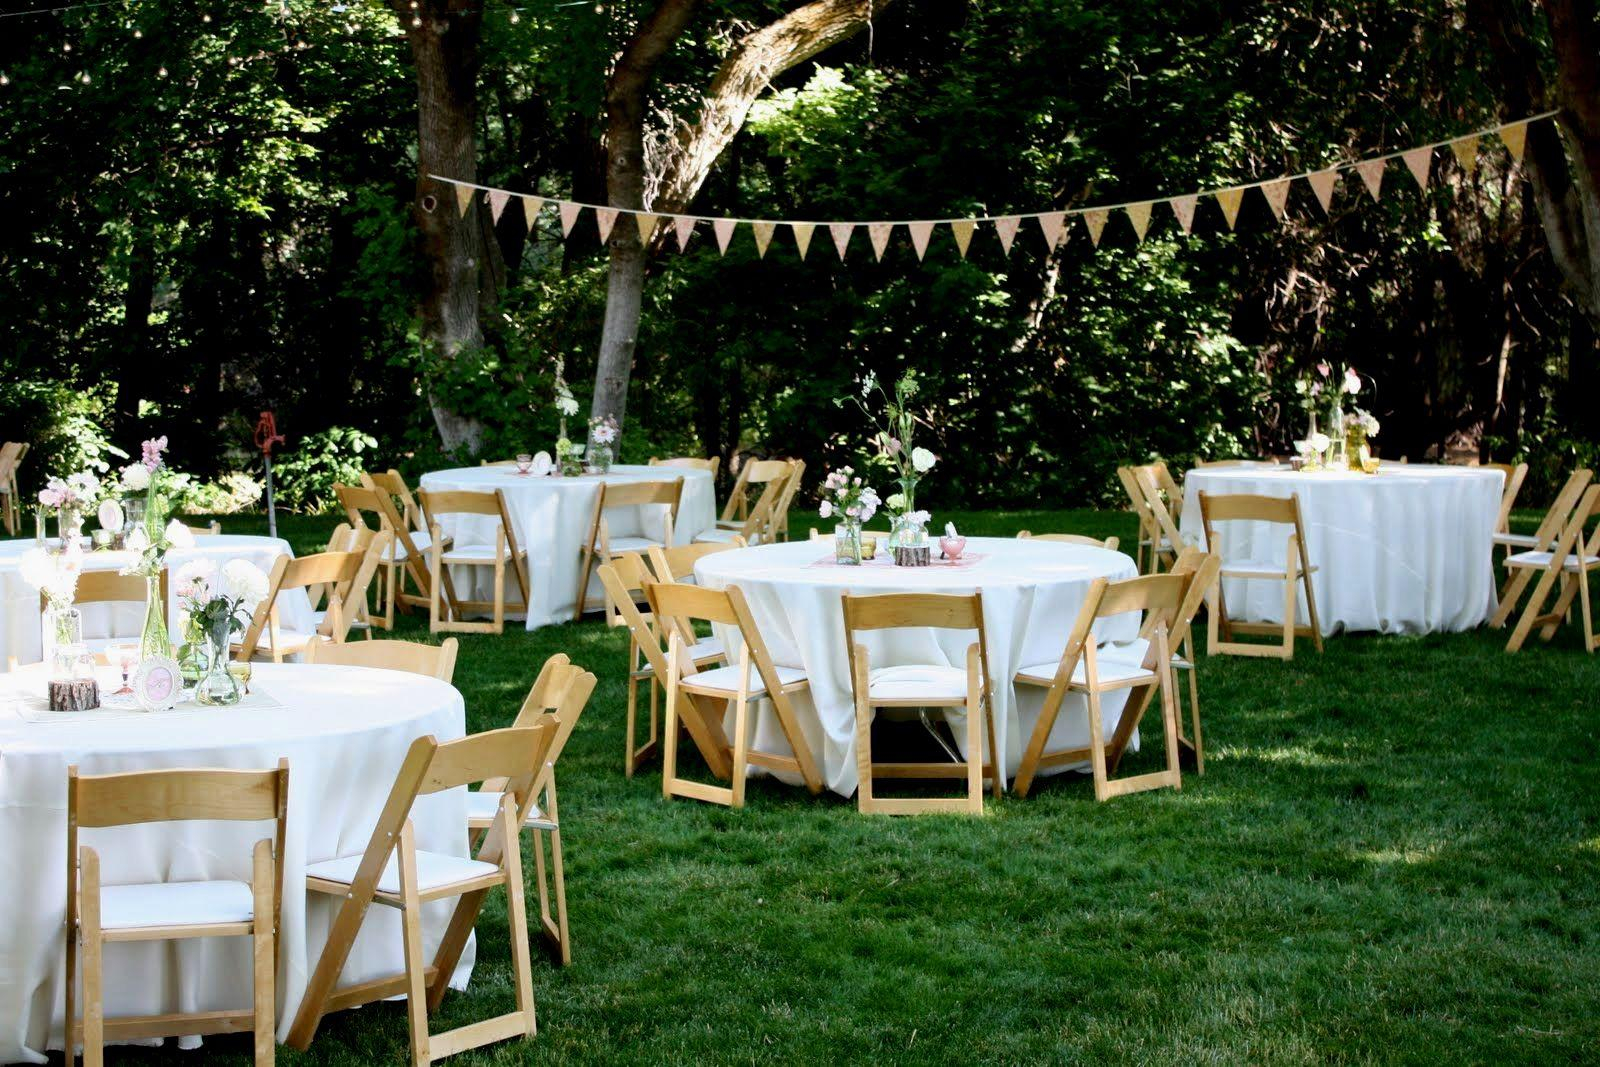 11.backyard wedding idea via Simphome.com